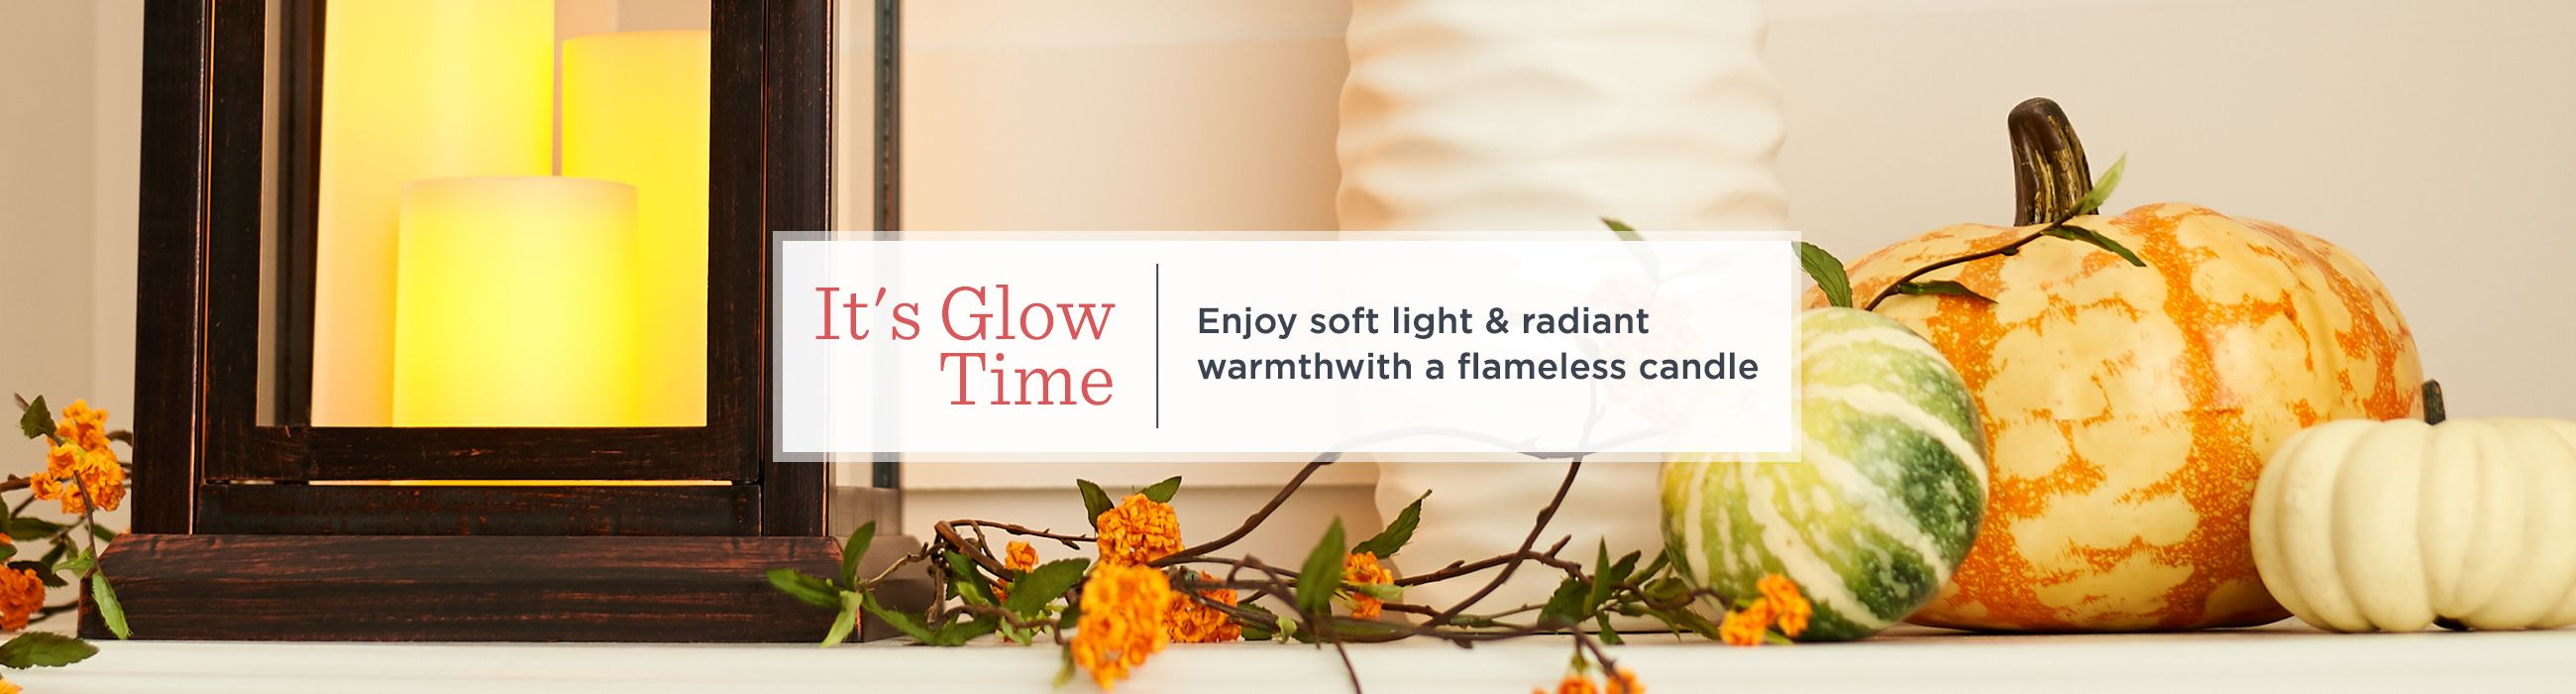 It's Glow Time, Enjoy soft light & radiant warmth with a flameless candle